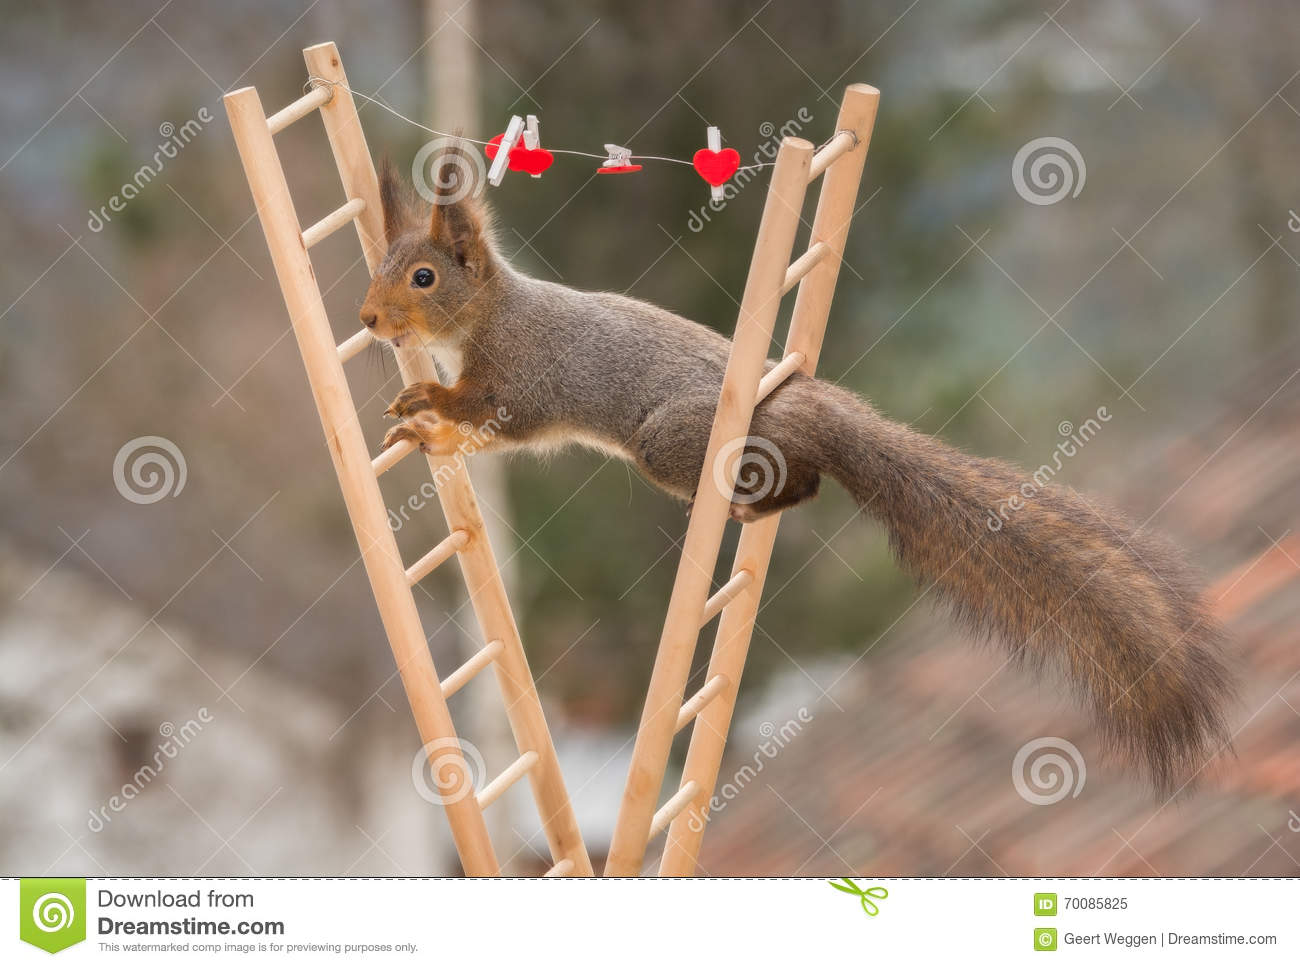 hight resolution of red squirrel standing between 2 stairs with wire and hearts